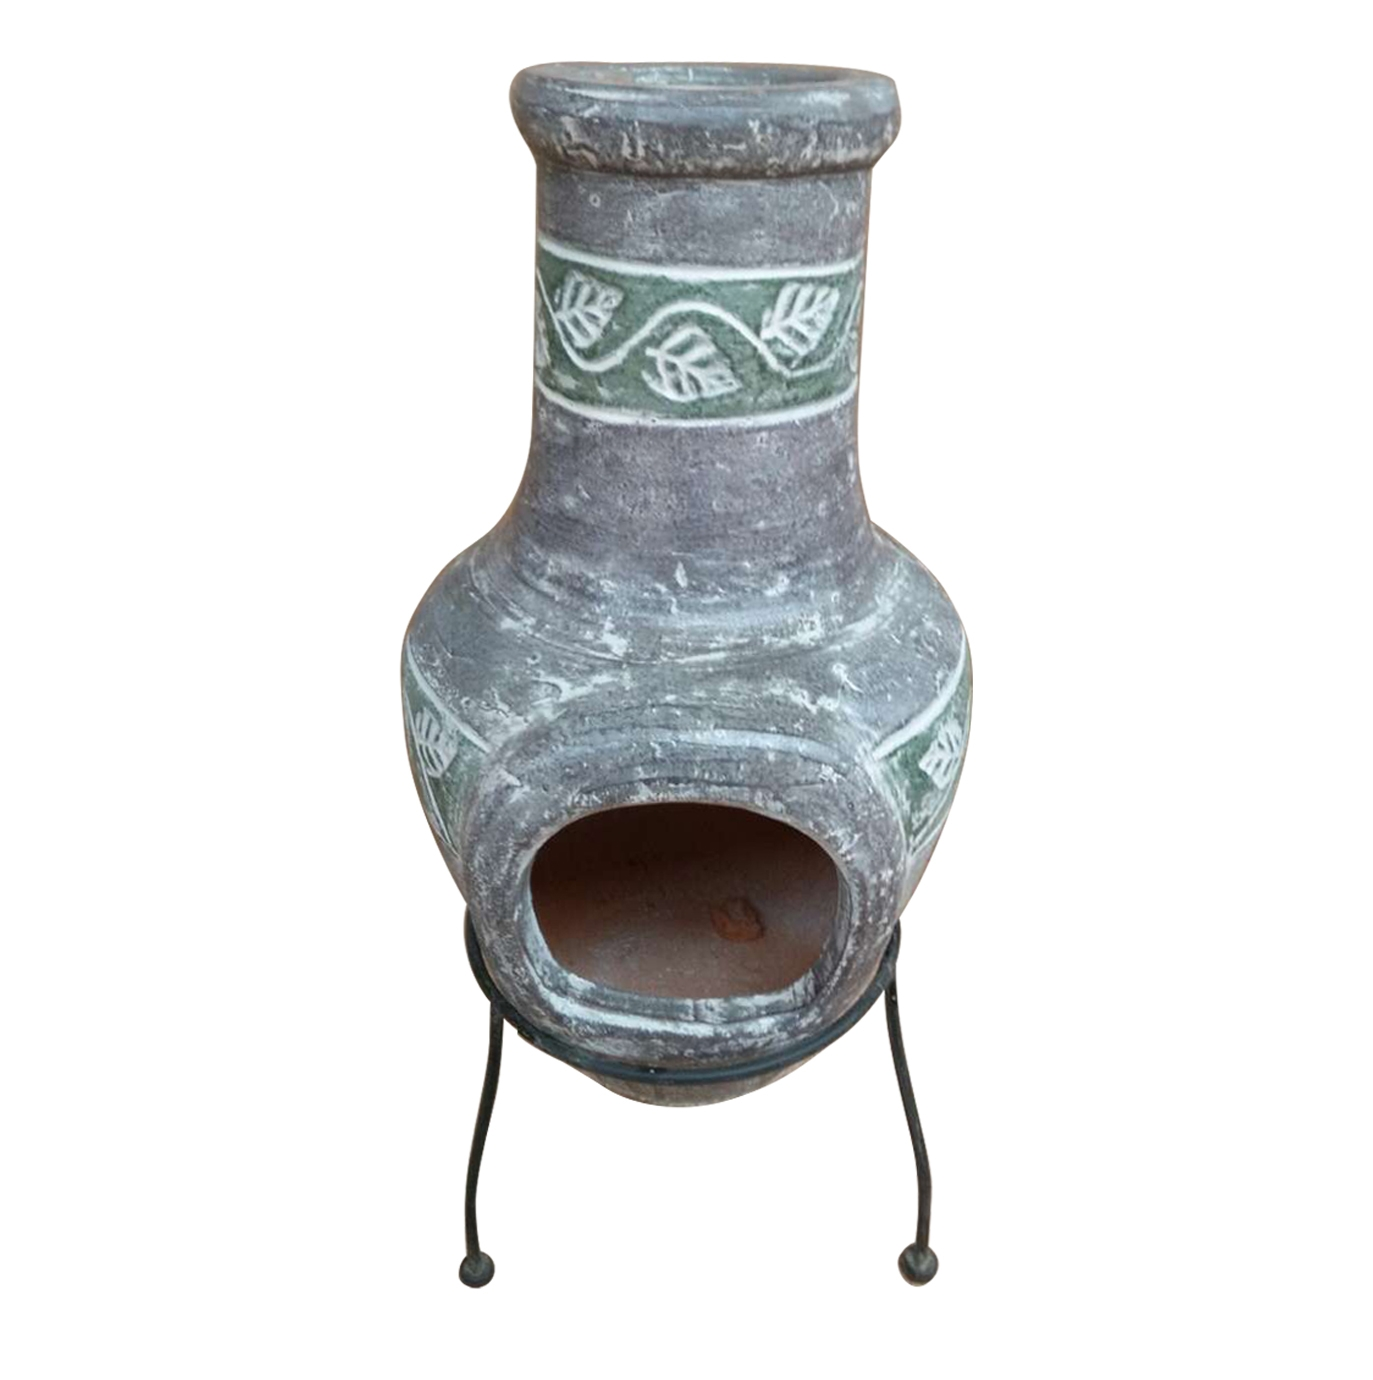 The �Outdoor Small Grey Clay Chimenea Mexican Patio Heater �by Charles Bentley is a wood burning garden heater, ideal for those cool evenings spent in